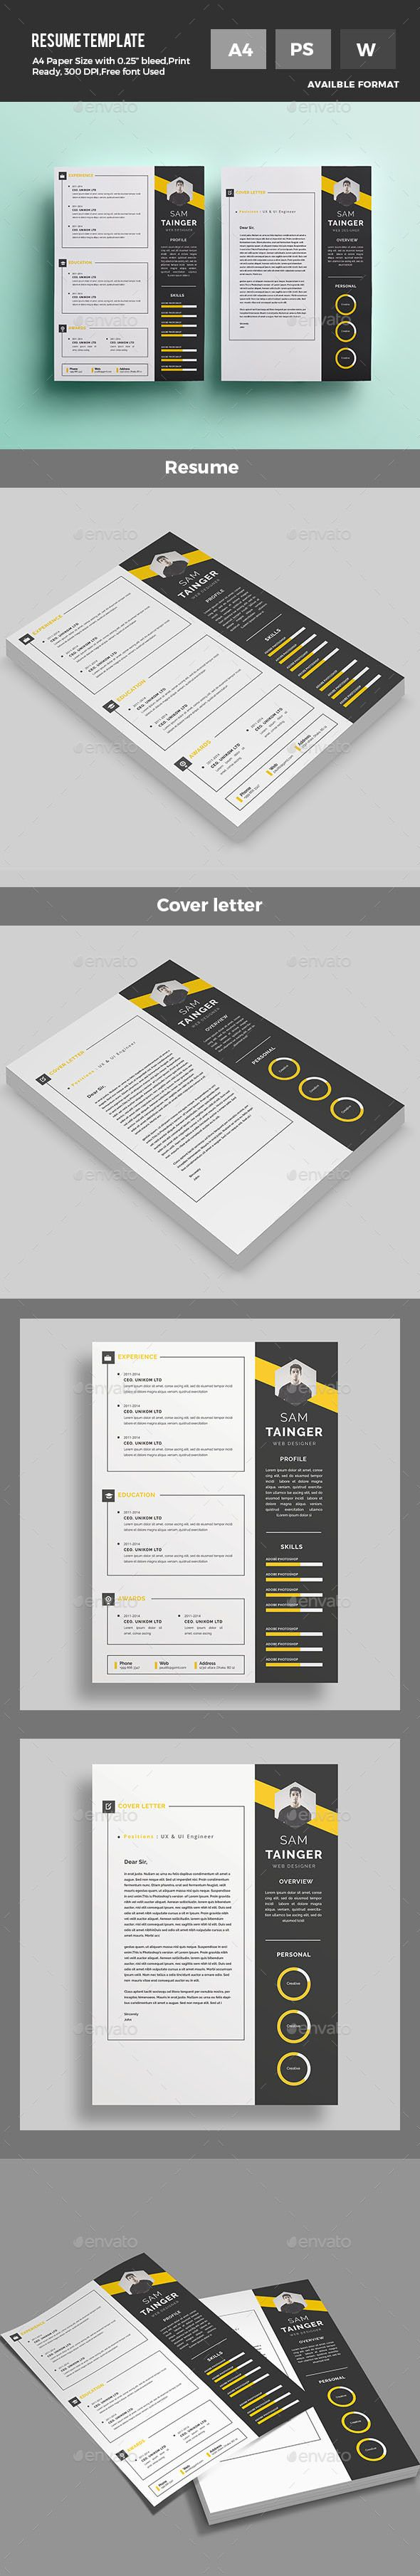 16 best Resume / Questionnaire / Document Design images on ...